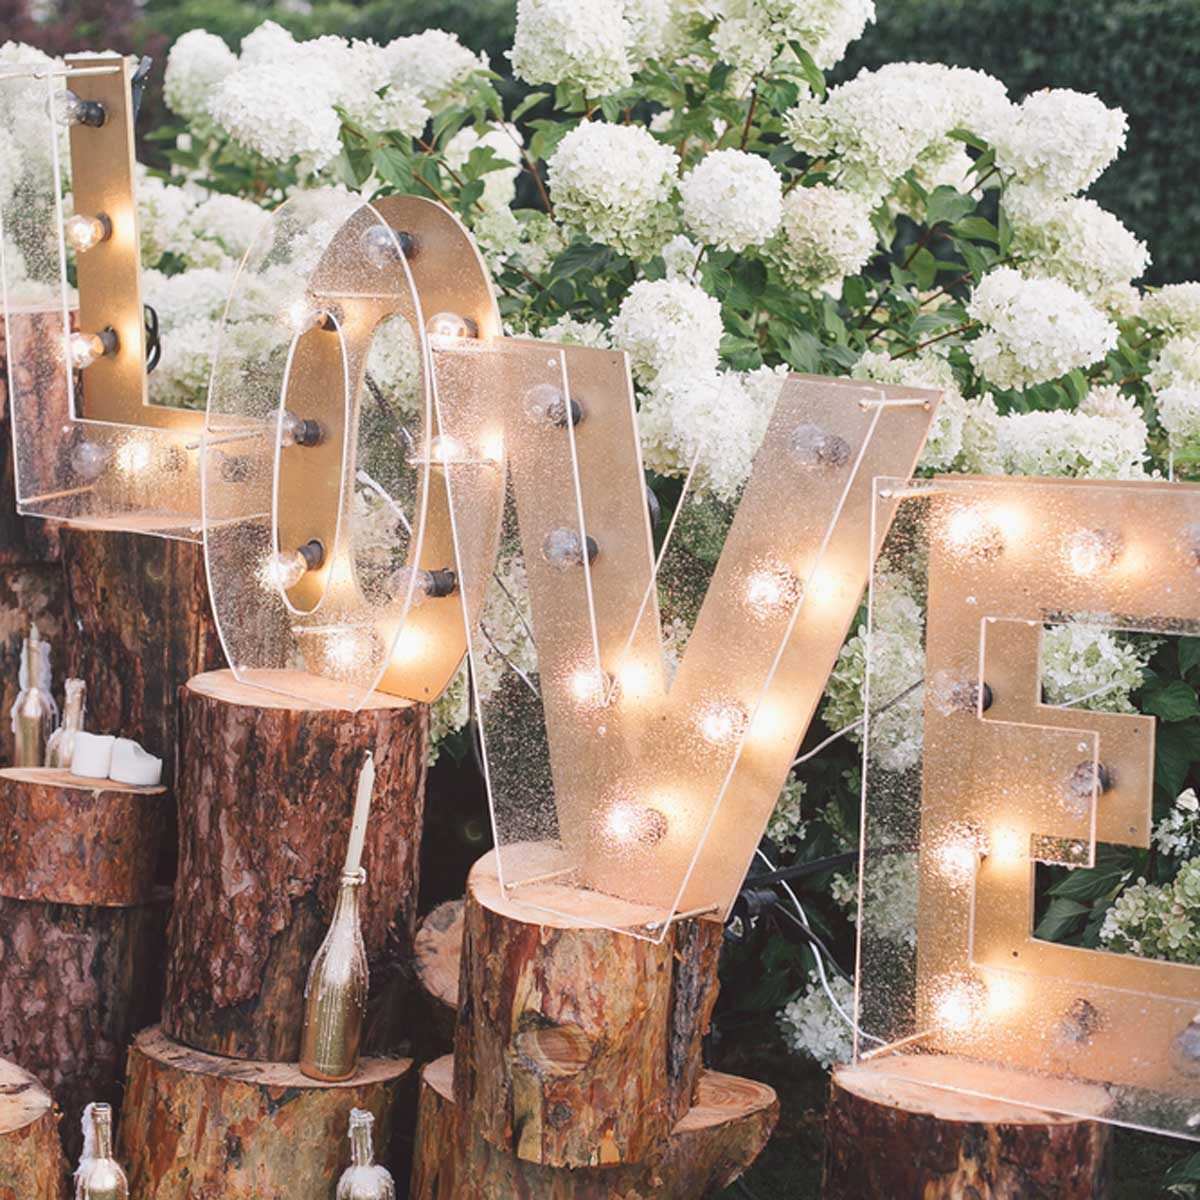 marquee letters wedding love garden wedding decorations